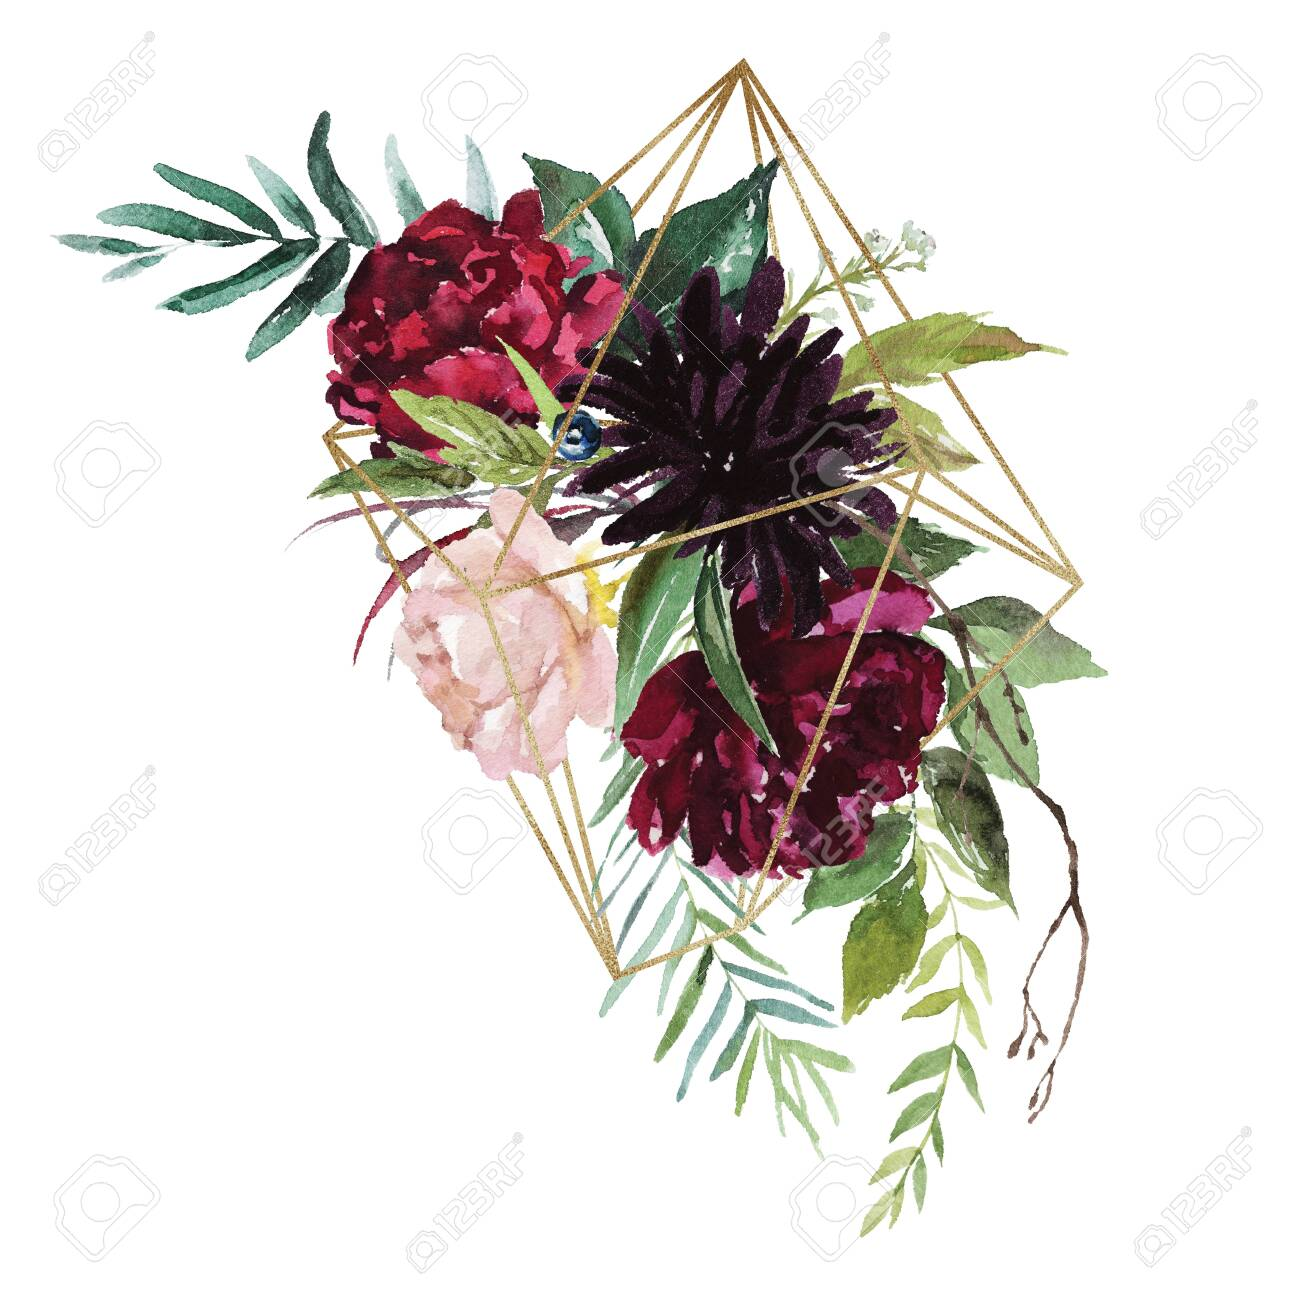 Watercolor Floral Illustration Burgundy Flowers Bouquet With Stock Photo Picture And Royalty Free Image Image 140950095